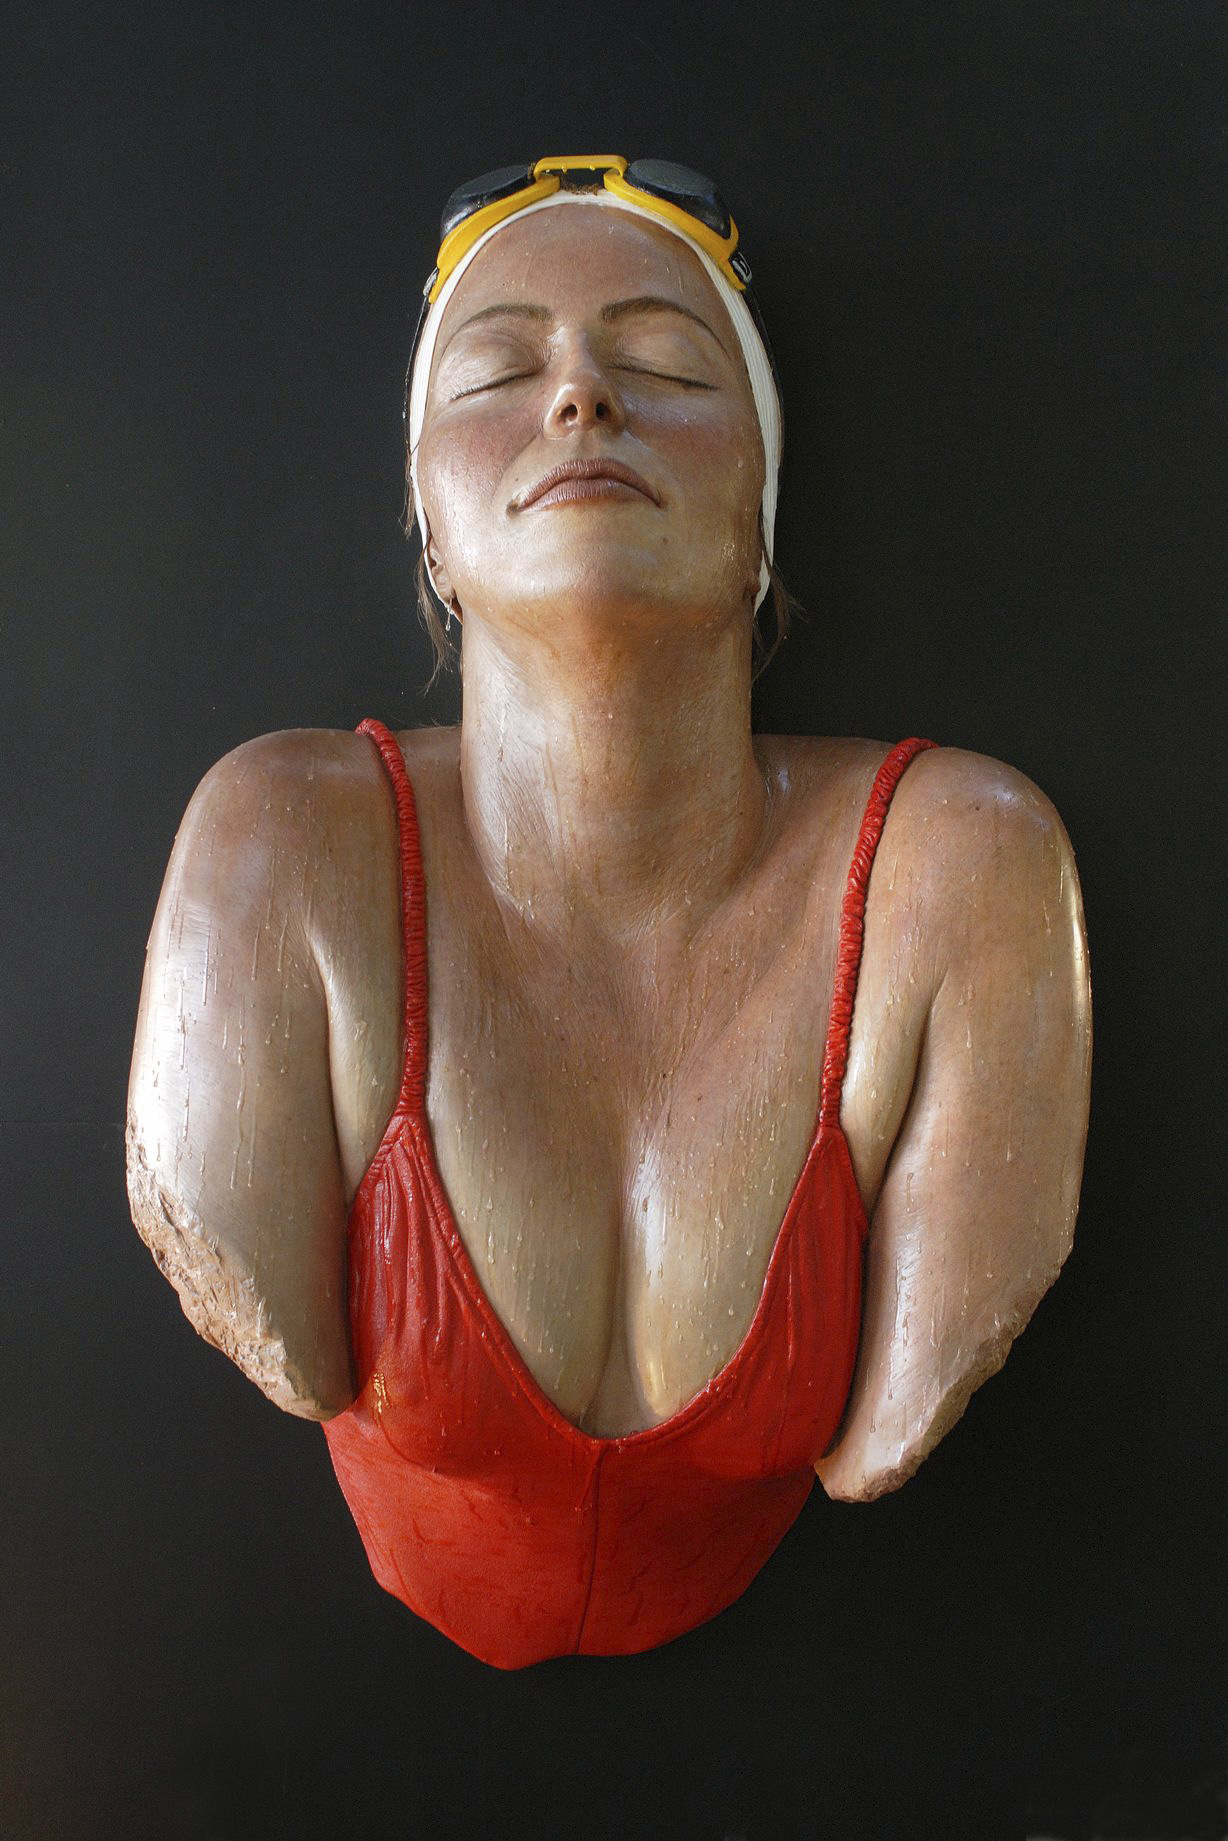 Catalina, 1981, Resin and Oil, 32 x 15 x 7 inches Artist: Carole Feuerman